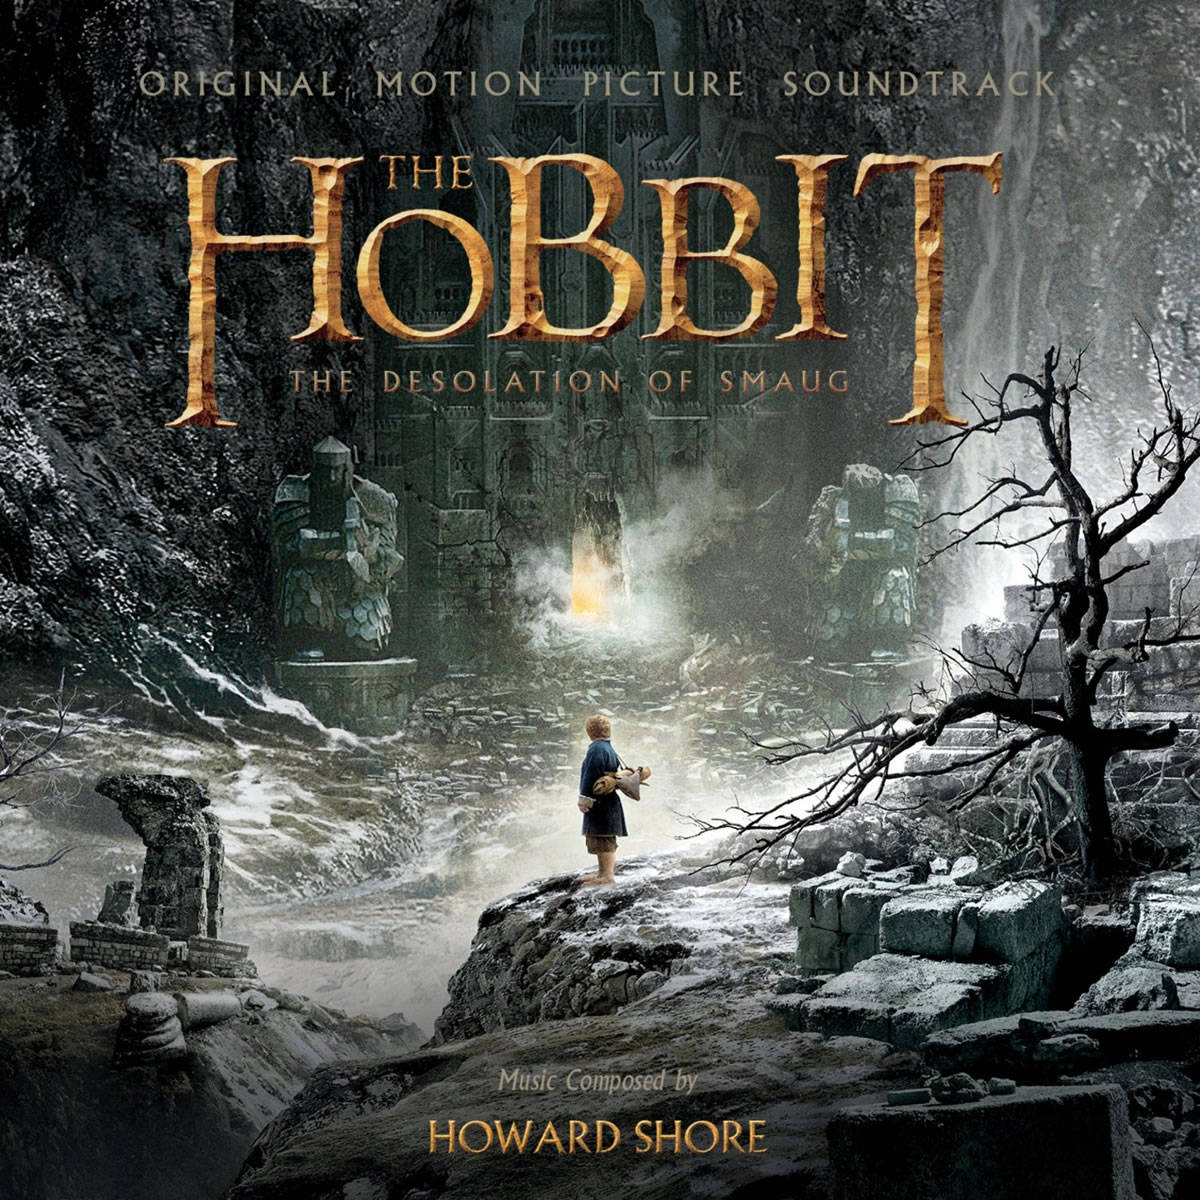 THE HOBBIT: THE DESOLATION OF SMAUG - ORIGINAL MOTION PICTURE SOUNDTRACK (2 AUDIO CDs)